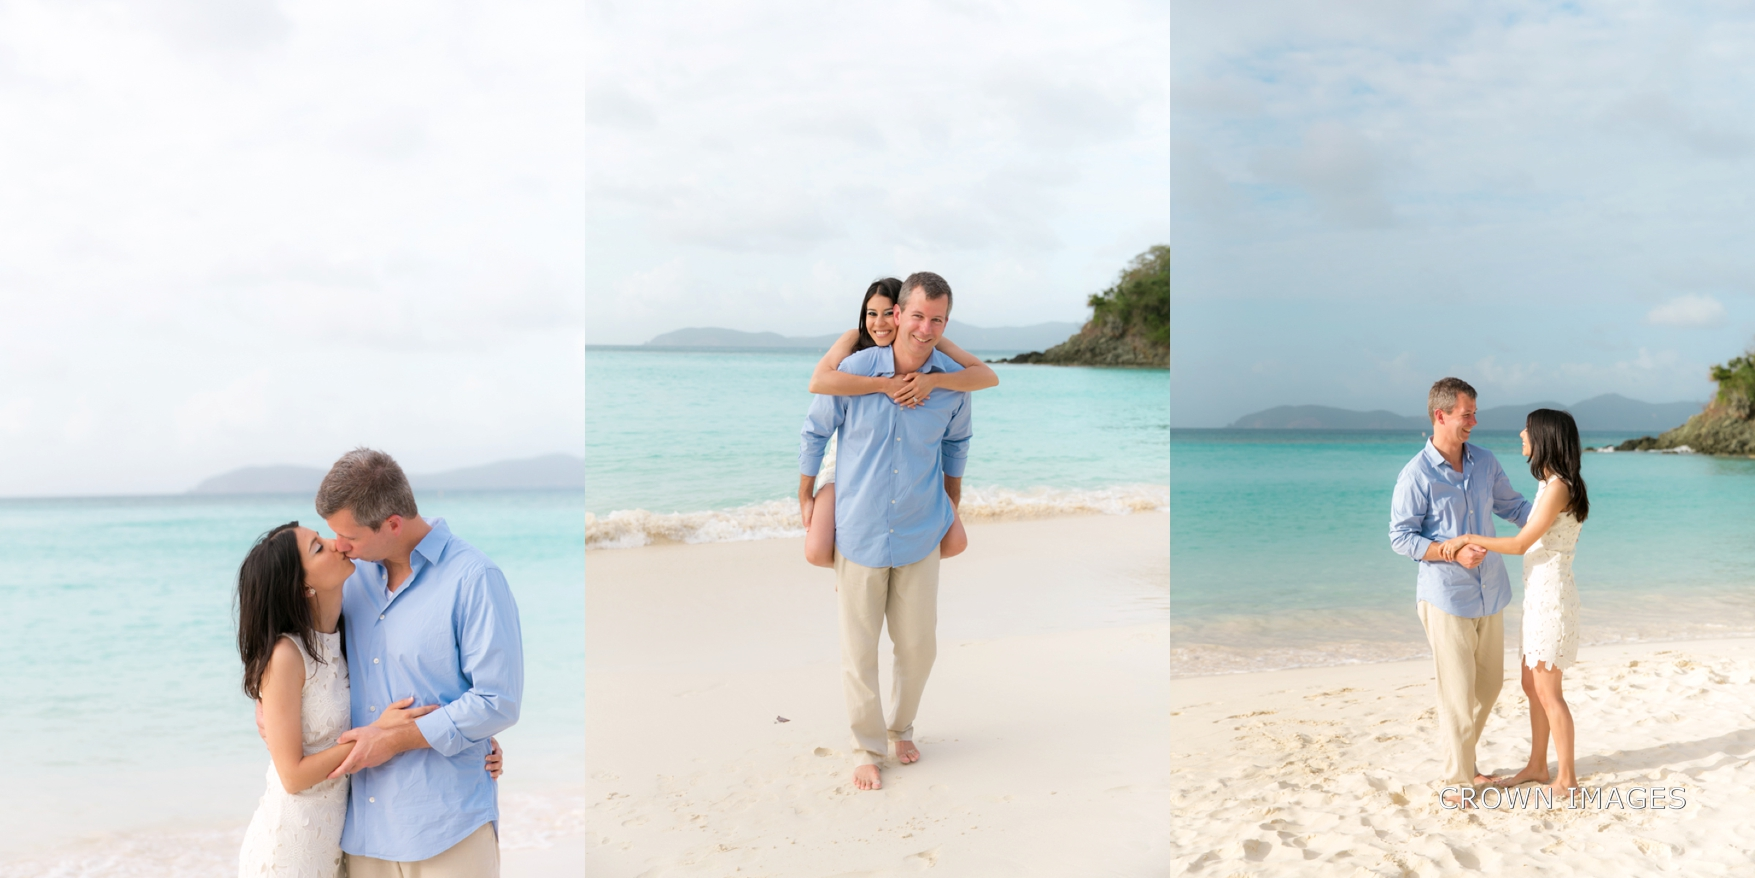 engagement_photos_virgin_islands_crown_images_0627.jpg